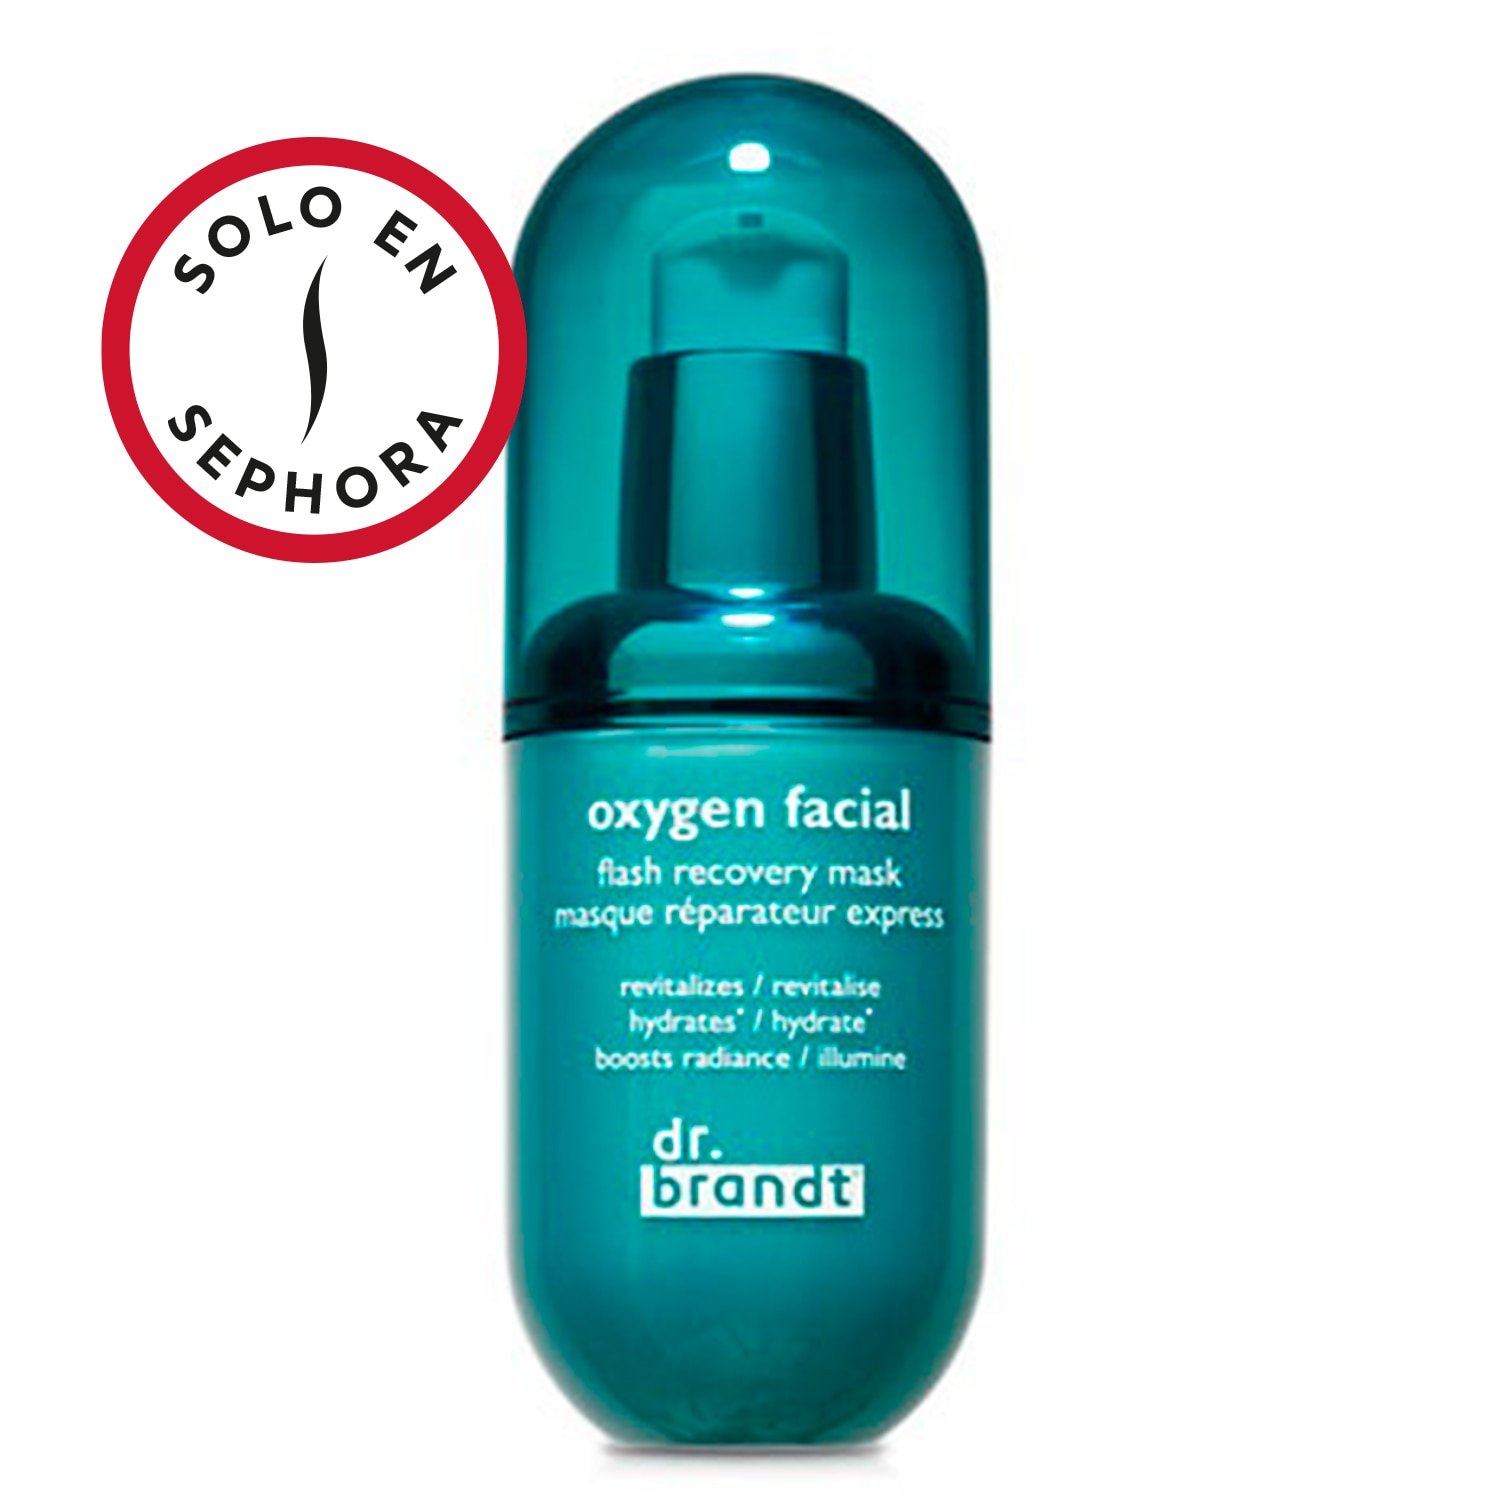 OXYGEN FACIAL FLASH RECOVERY MASK